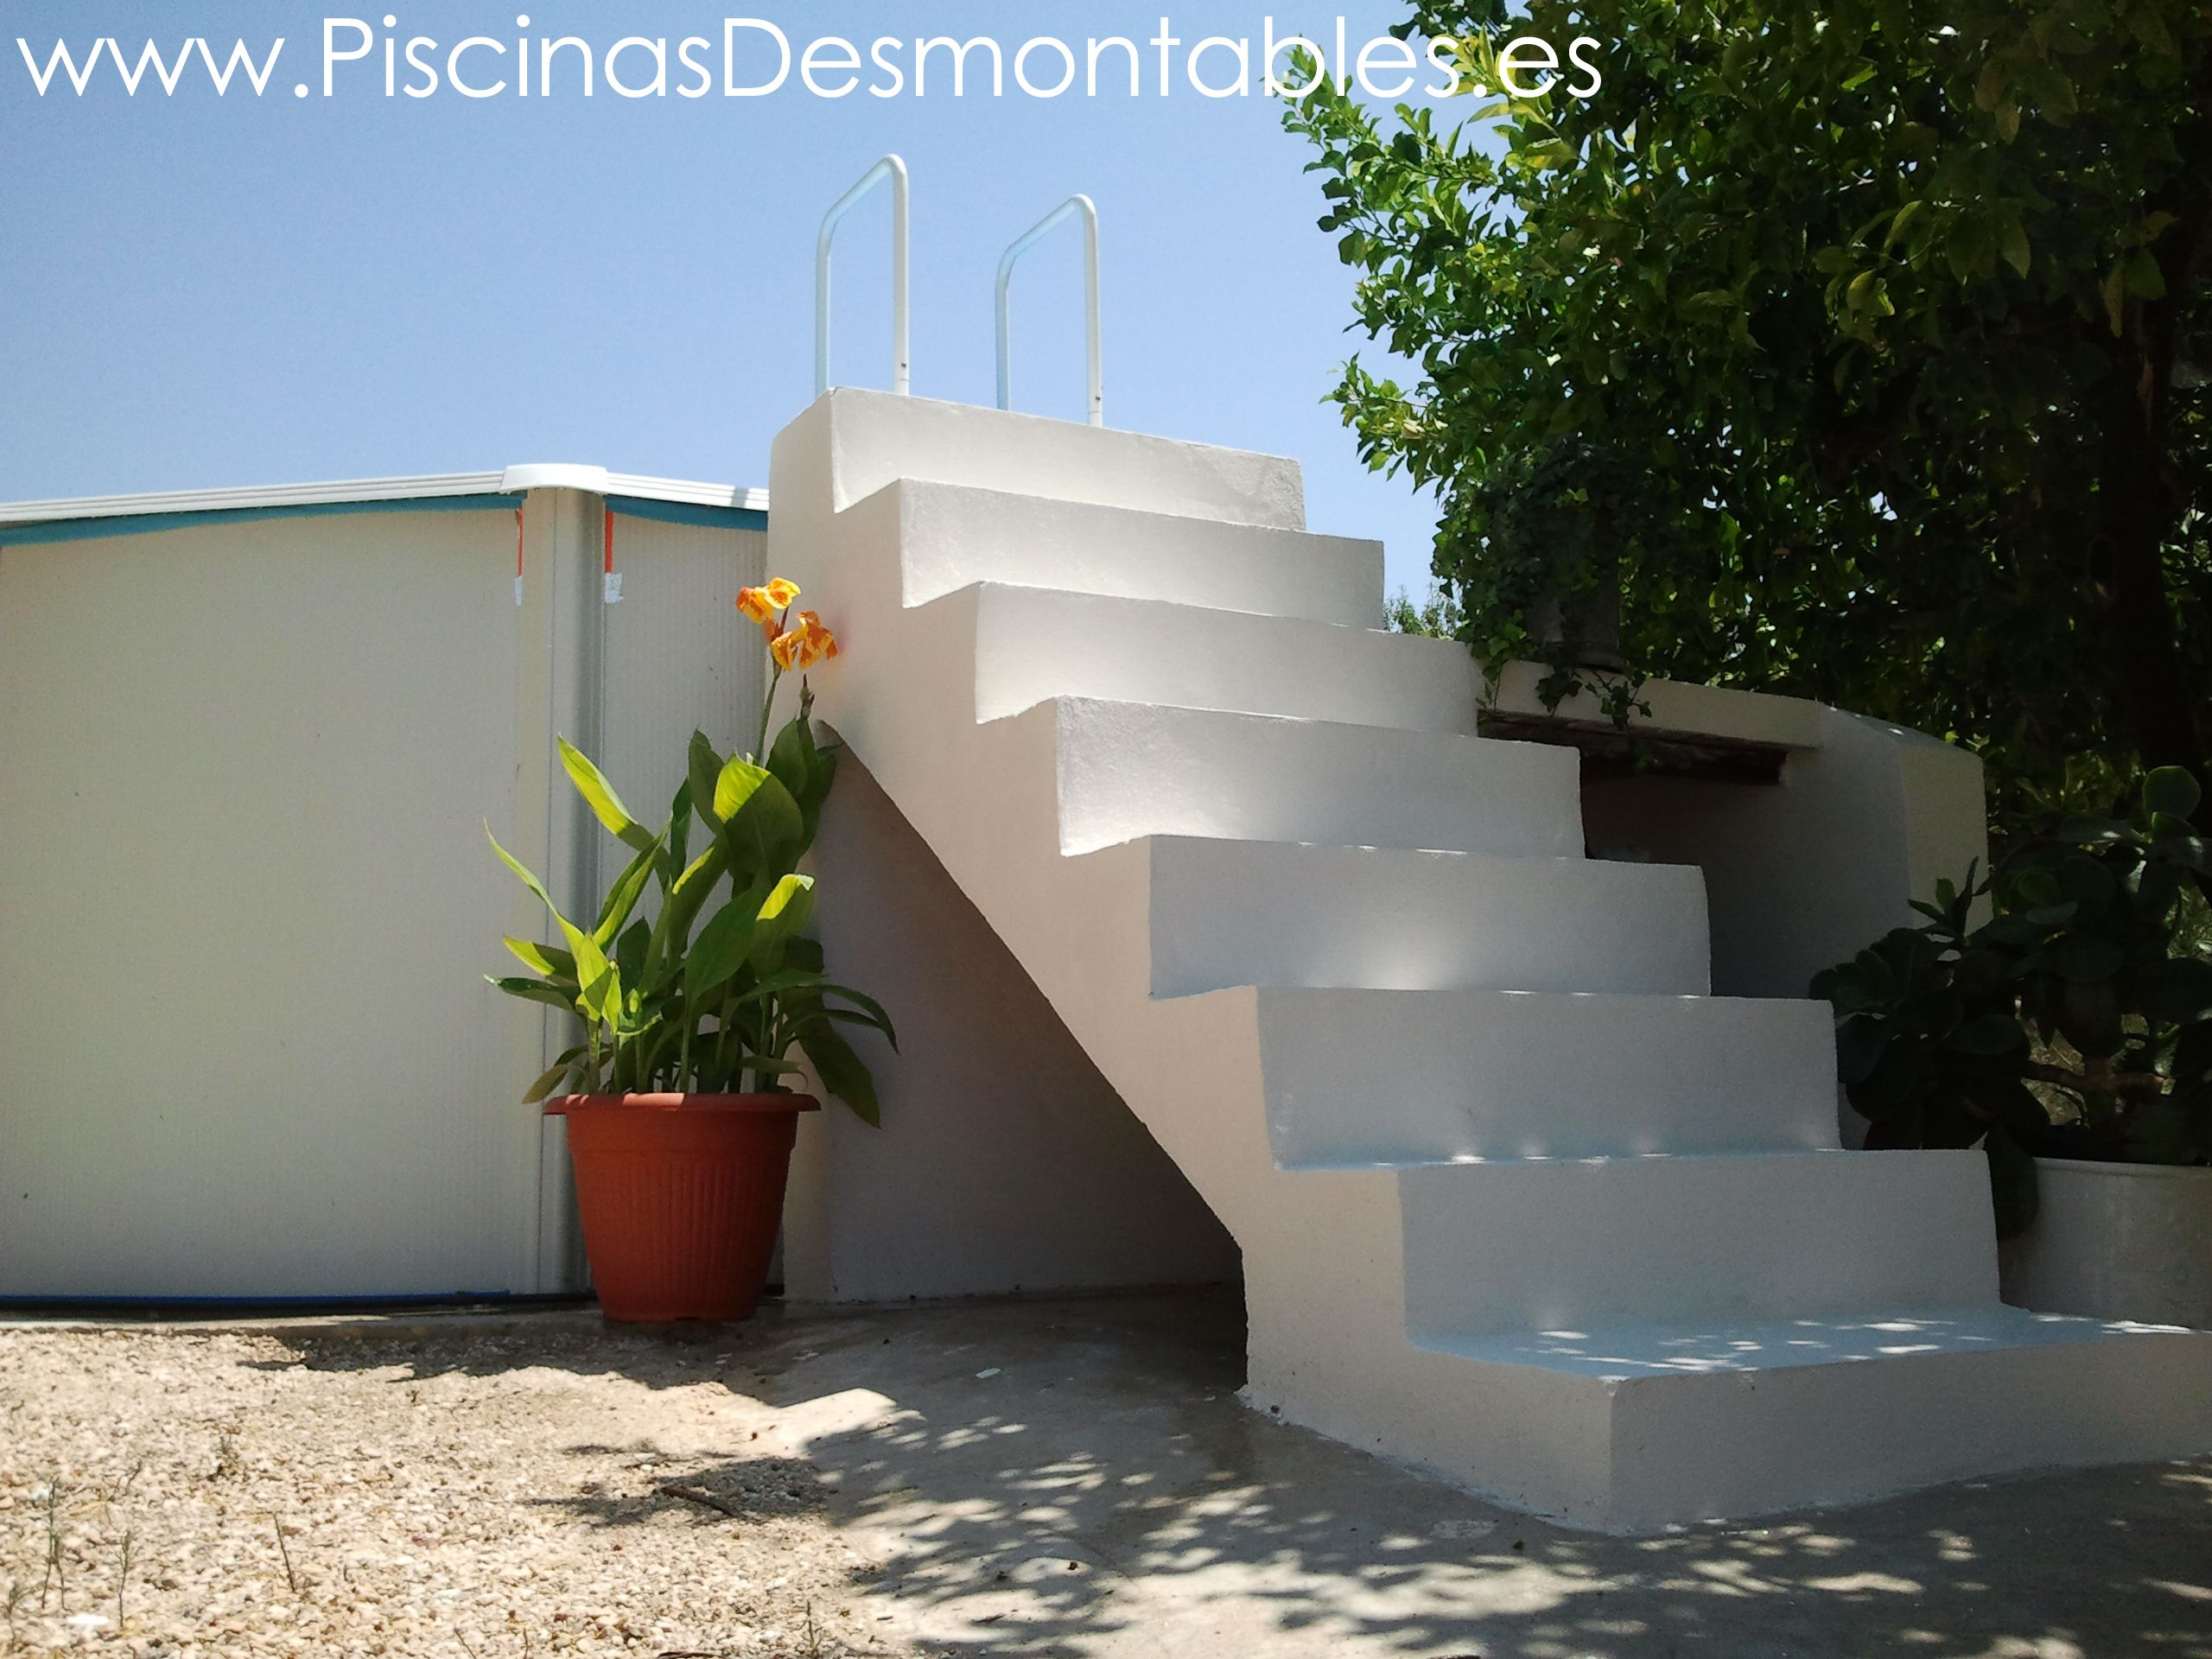 Escalera de cemento blanco para piscinas desmontables for Piscinas cemento construccion